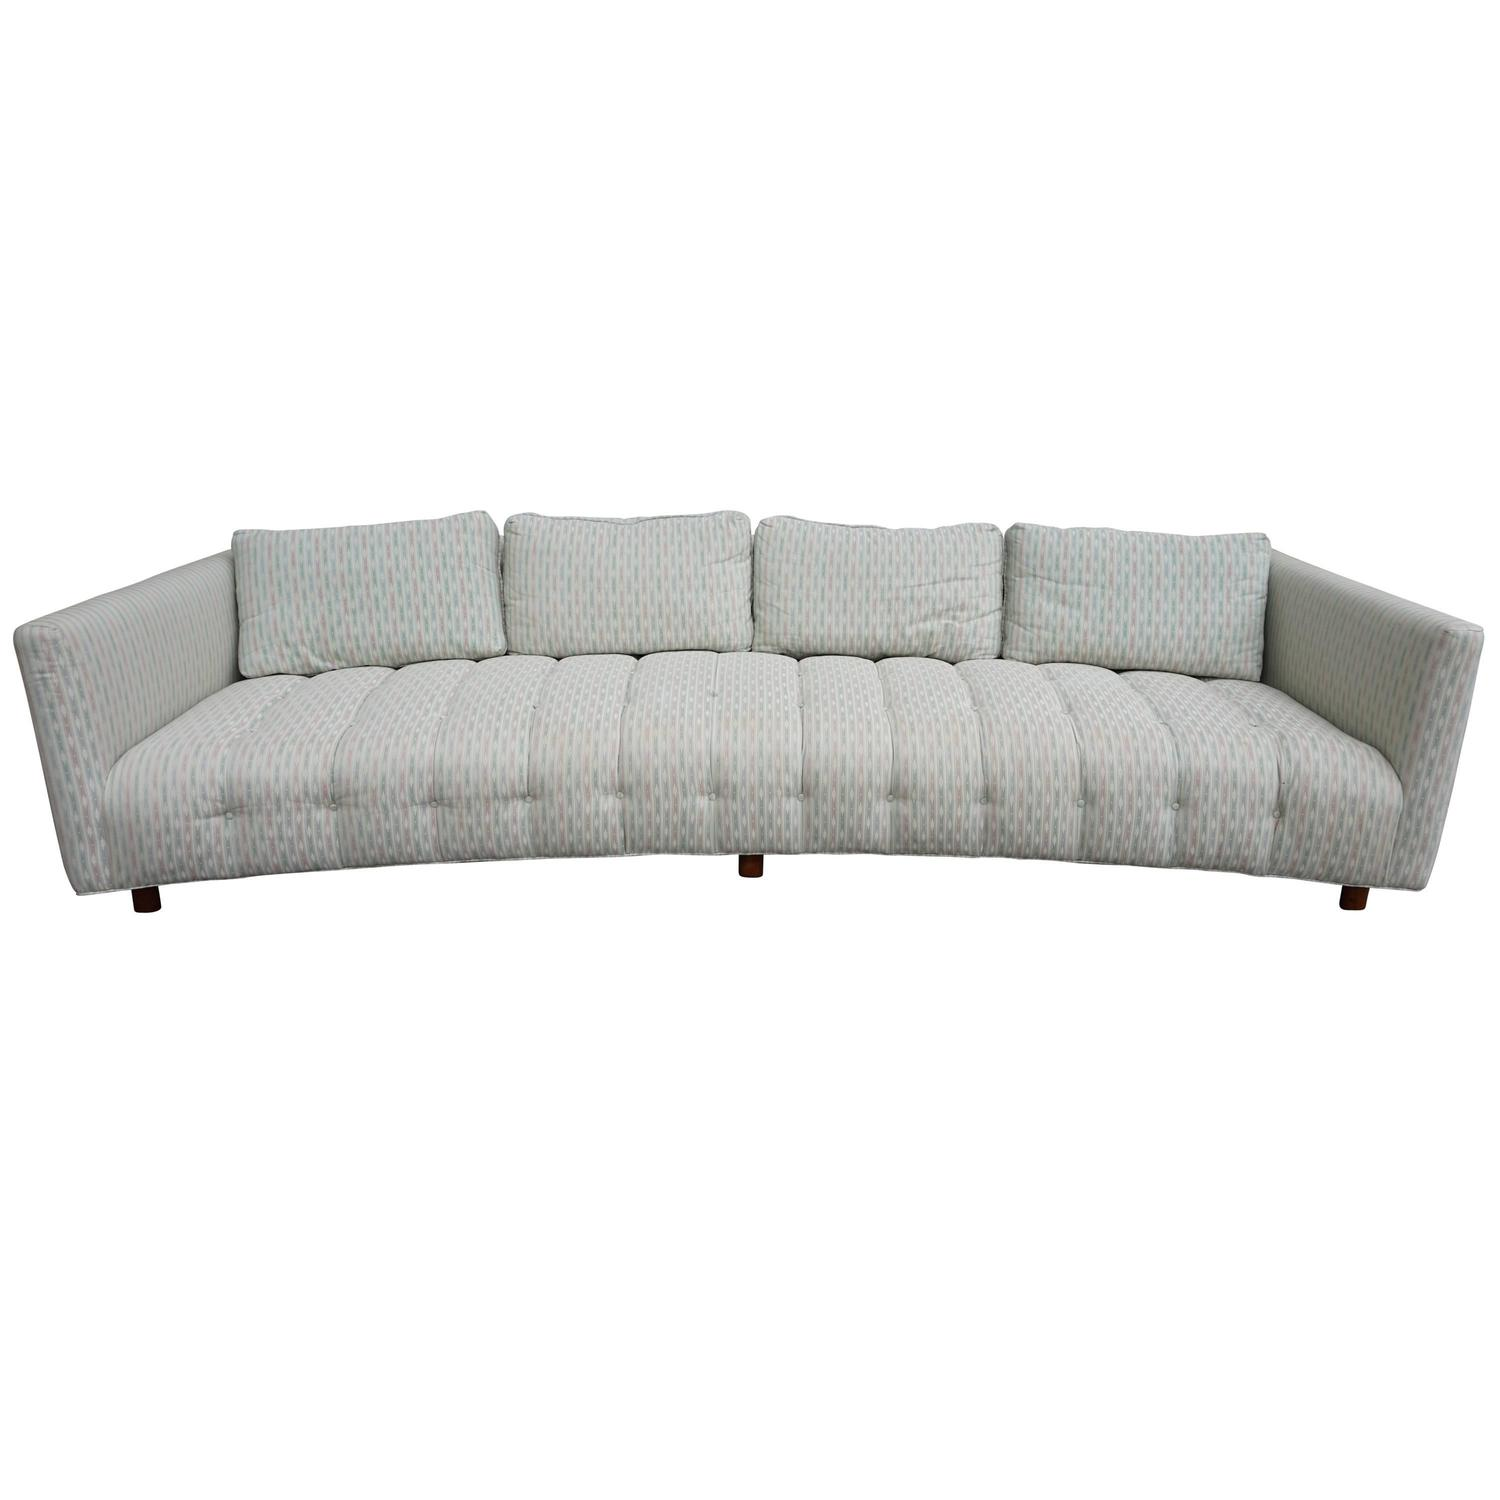 Erwin Lambeth Furniture Chairs Sofas Tables & More 13 For